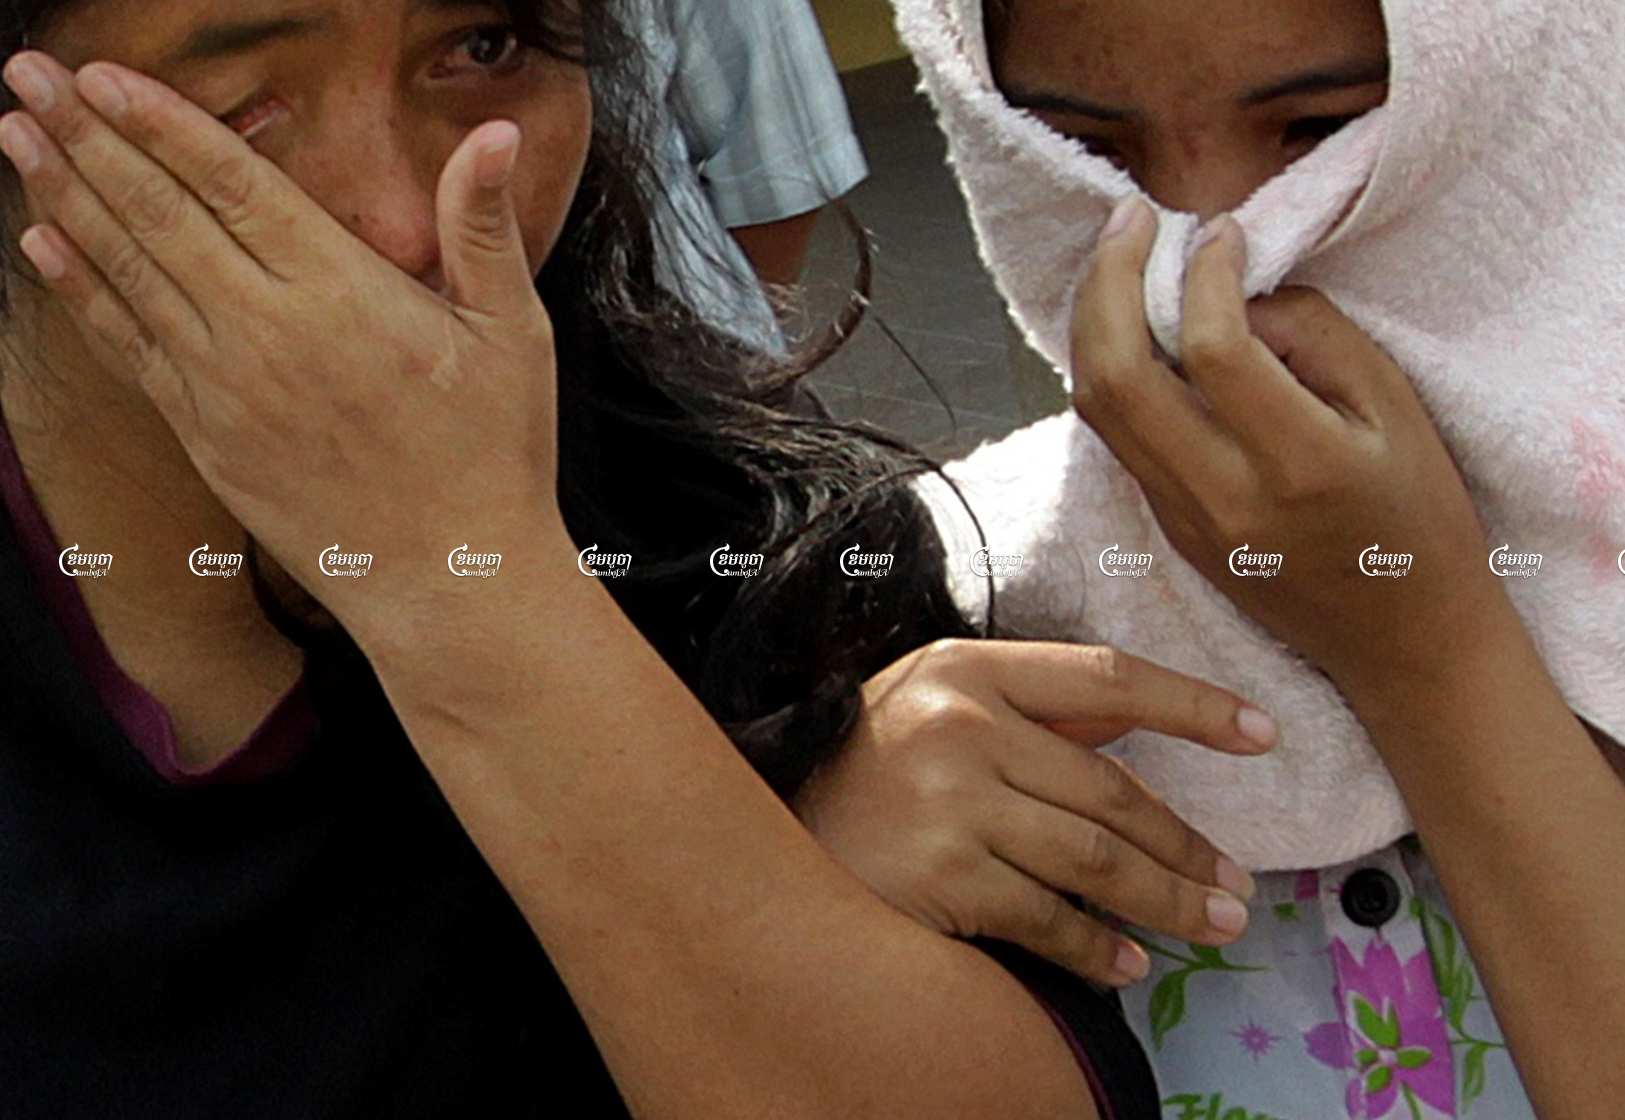 Maids who were abused by their employers in Malaysia arrive at Phnom Penh International airport after being repatriated by the Cambodian embassy. Picture taken on February 2, 2012. CamboJA/ Panha Chhorpoan